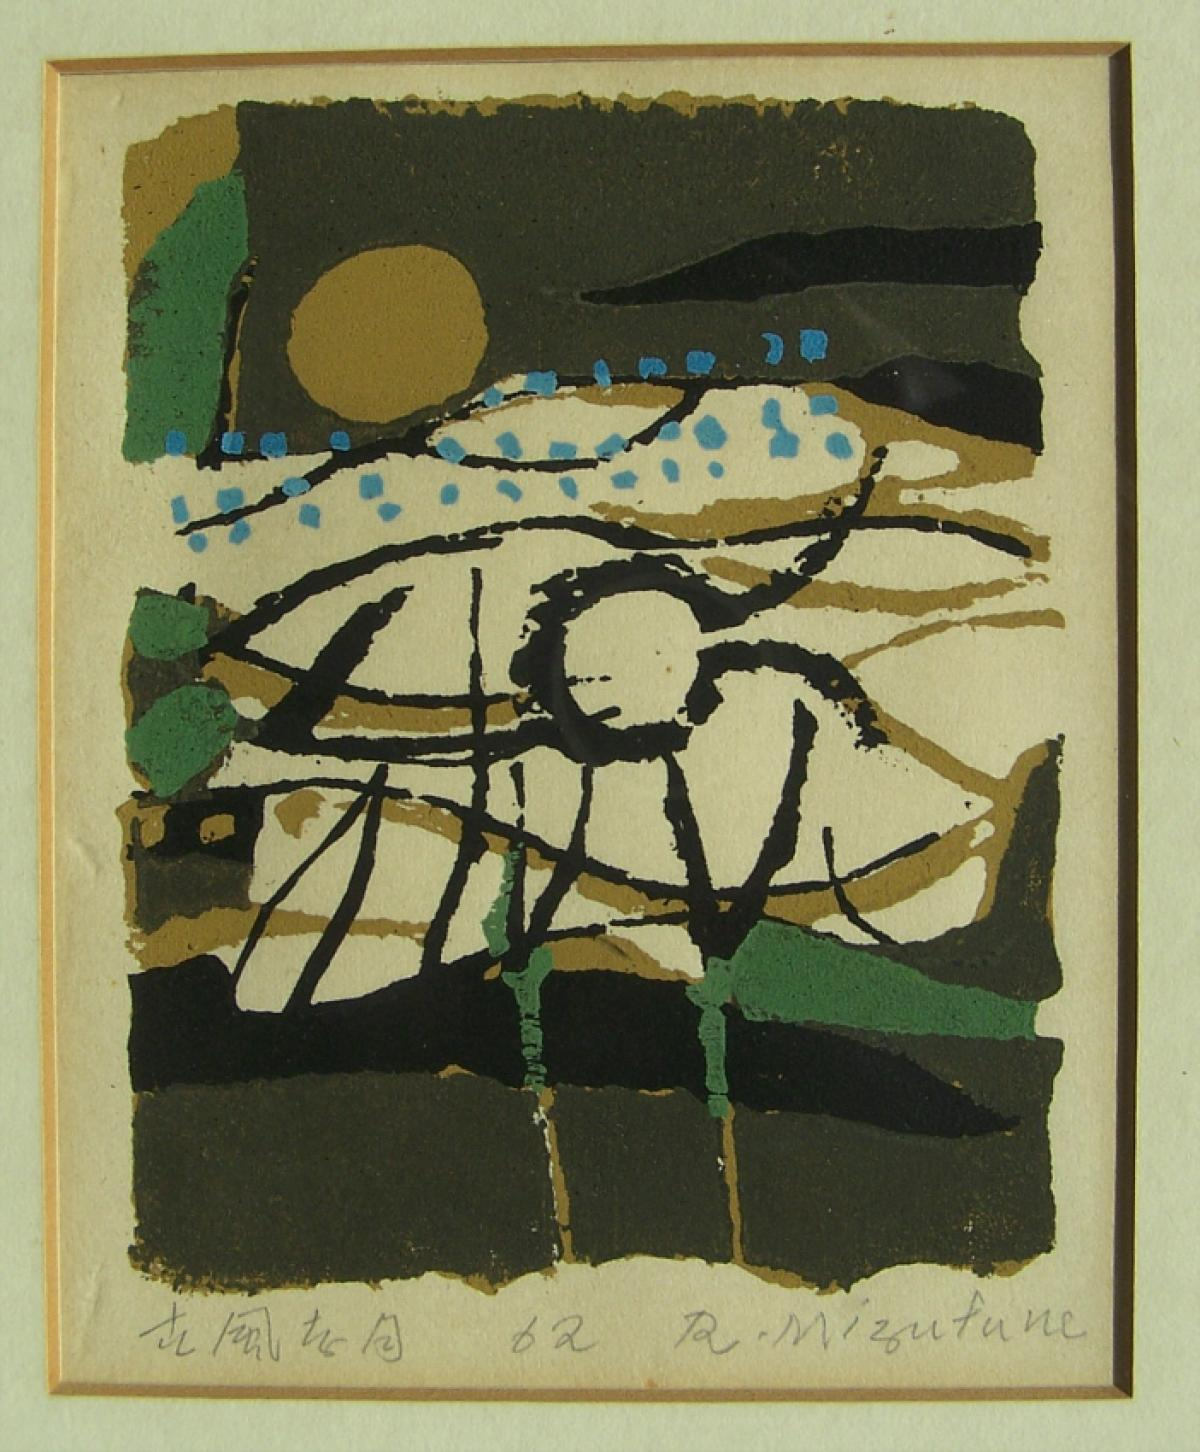 Vintage Mizufune Rokushu Colored Wood Block Print C1962 The Veiwable Measures 45 X 55 Inches Signed And Numbered Original Frame